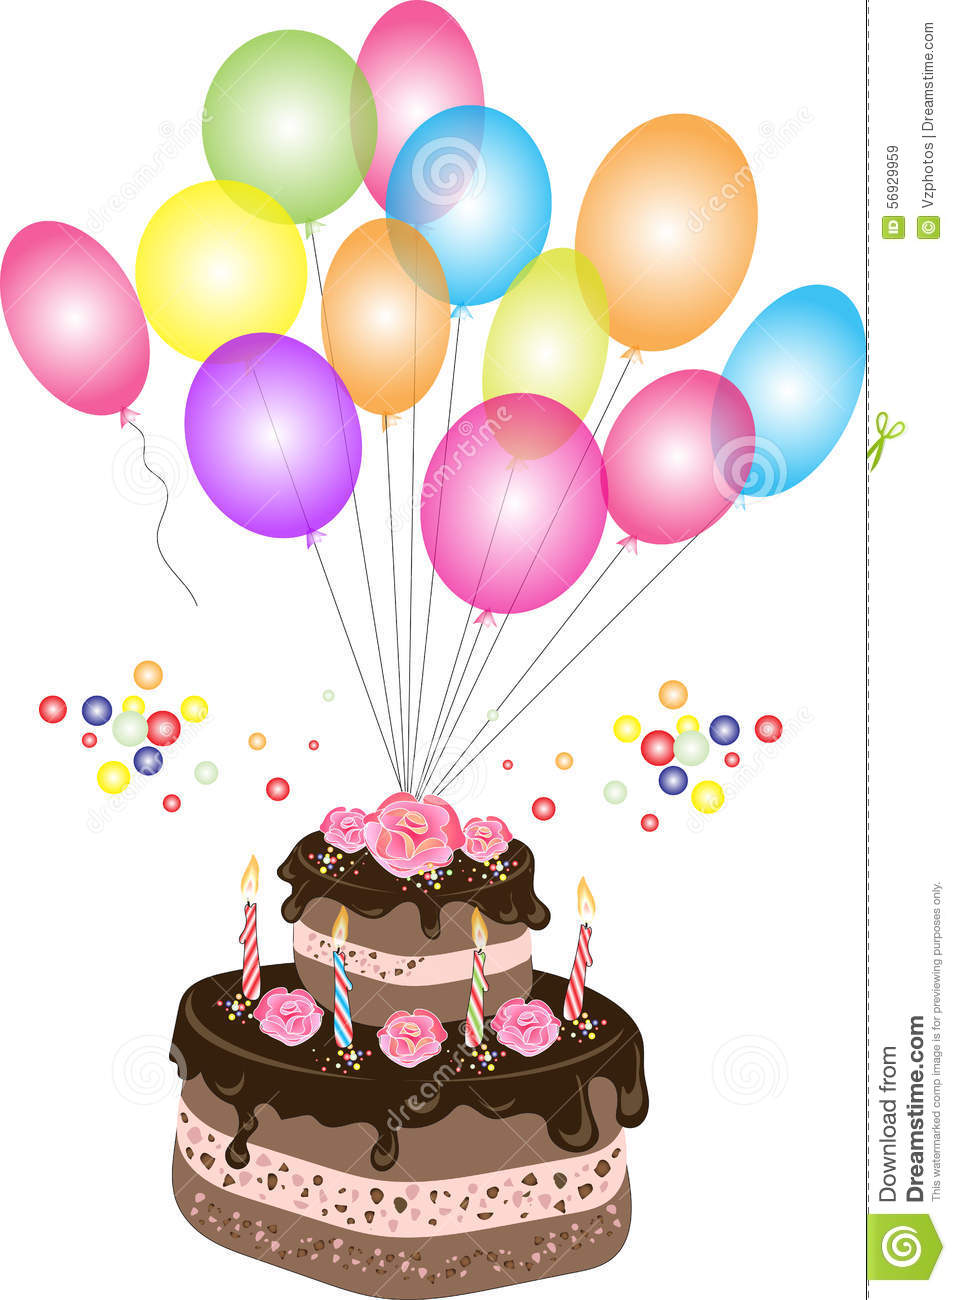 Birthday Chocolate Cake With Balloon Stock Vector Illustration of